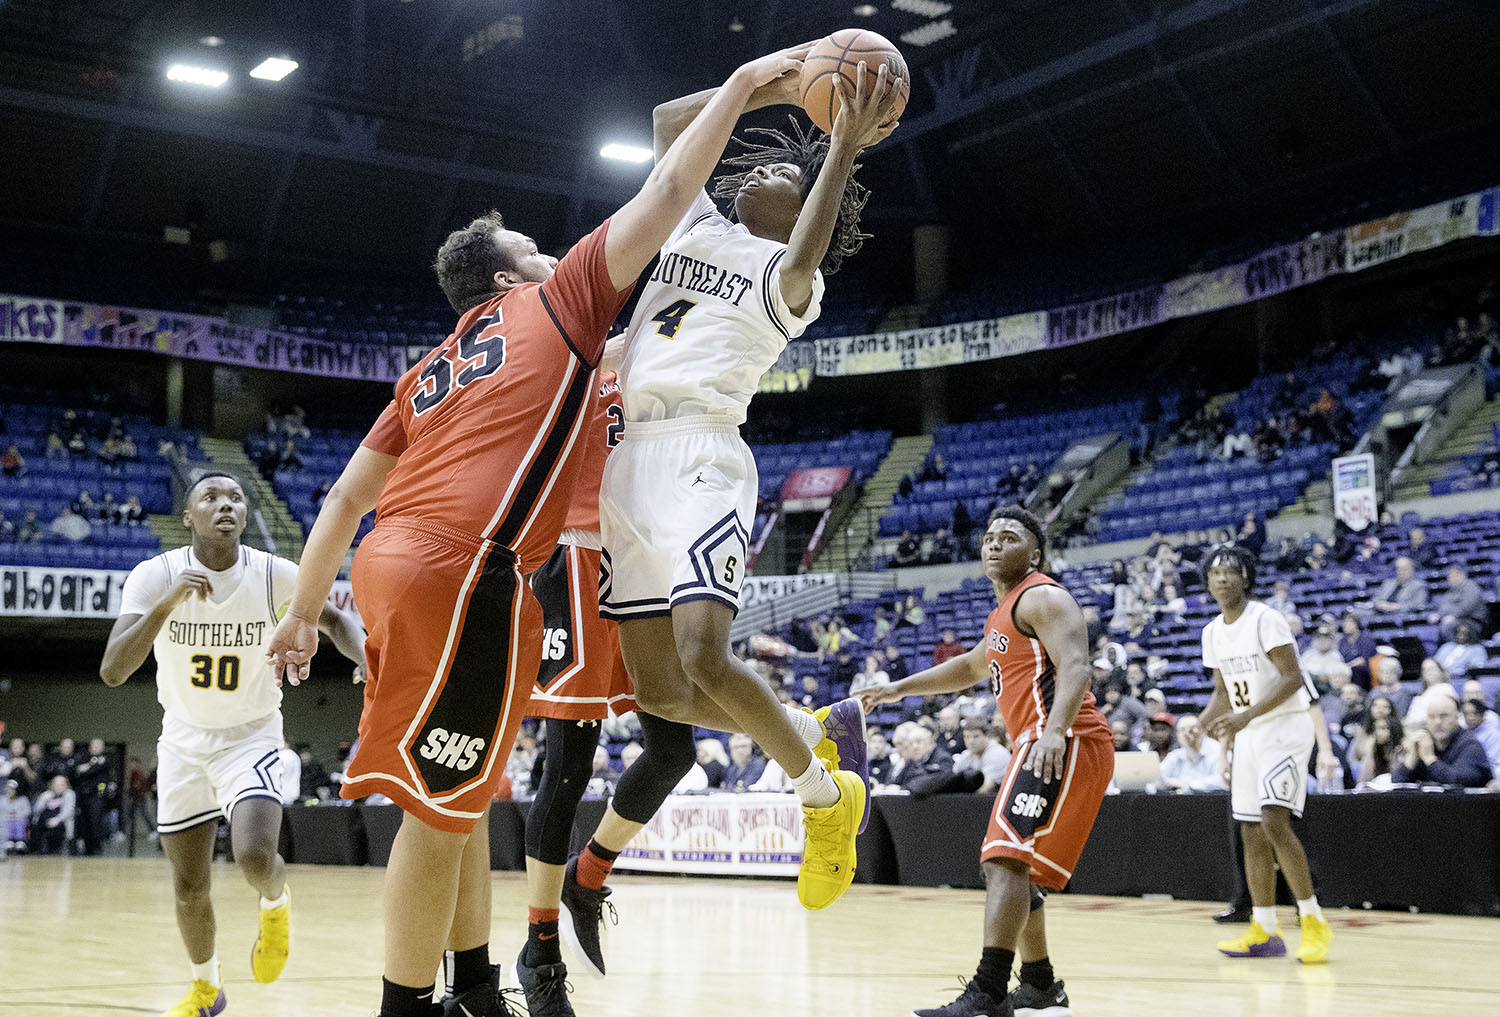 Springfield's Nate Borders fouls Southeast's Terrion Murdix during the Boys City Tournament at the Bank of Springfield Center Thursday, Jan. 17, 2019.  [Ted Schurter/The State Journal-Register]